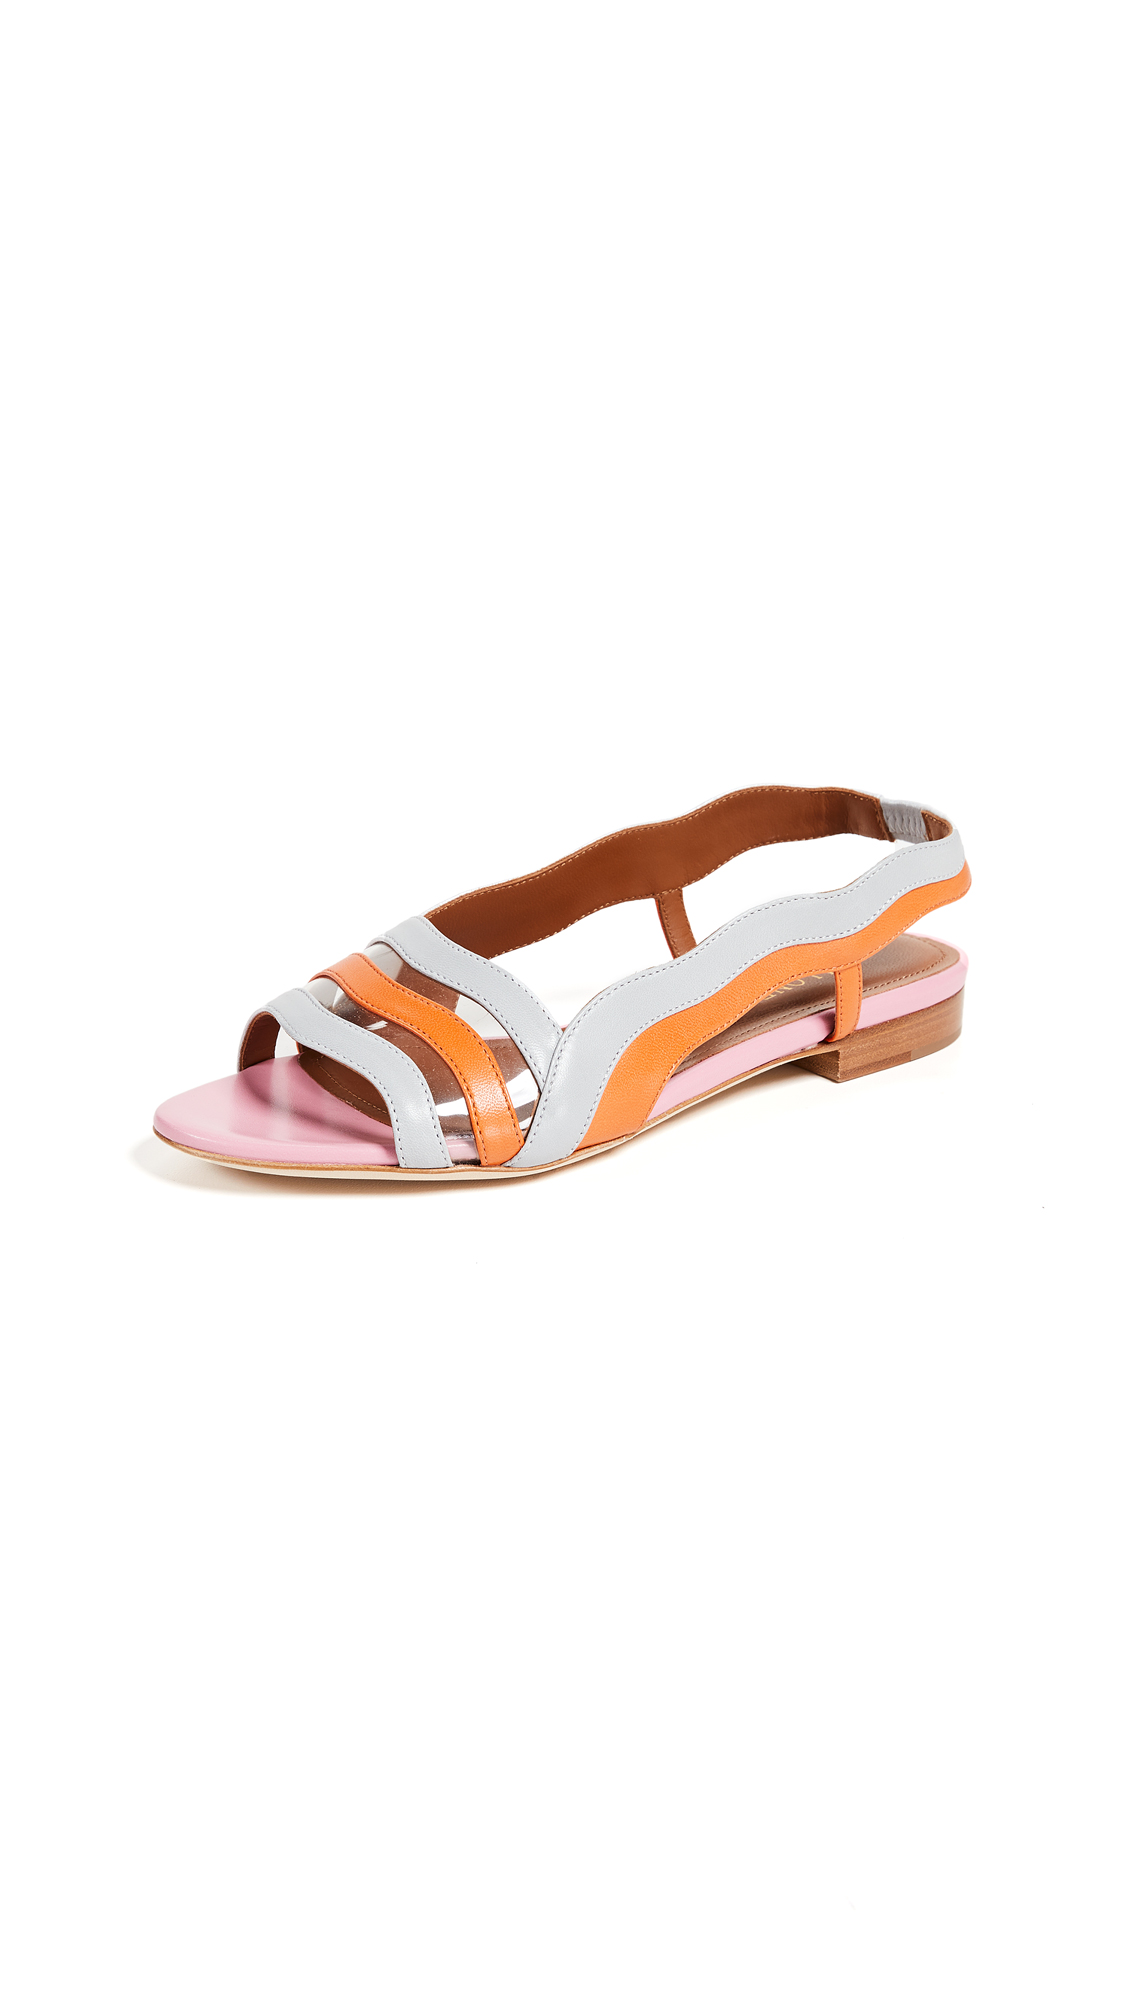 Malone Souliers by Roy Luwolt Flameana Flats - Grey/Orange/Pink